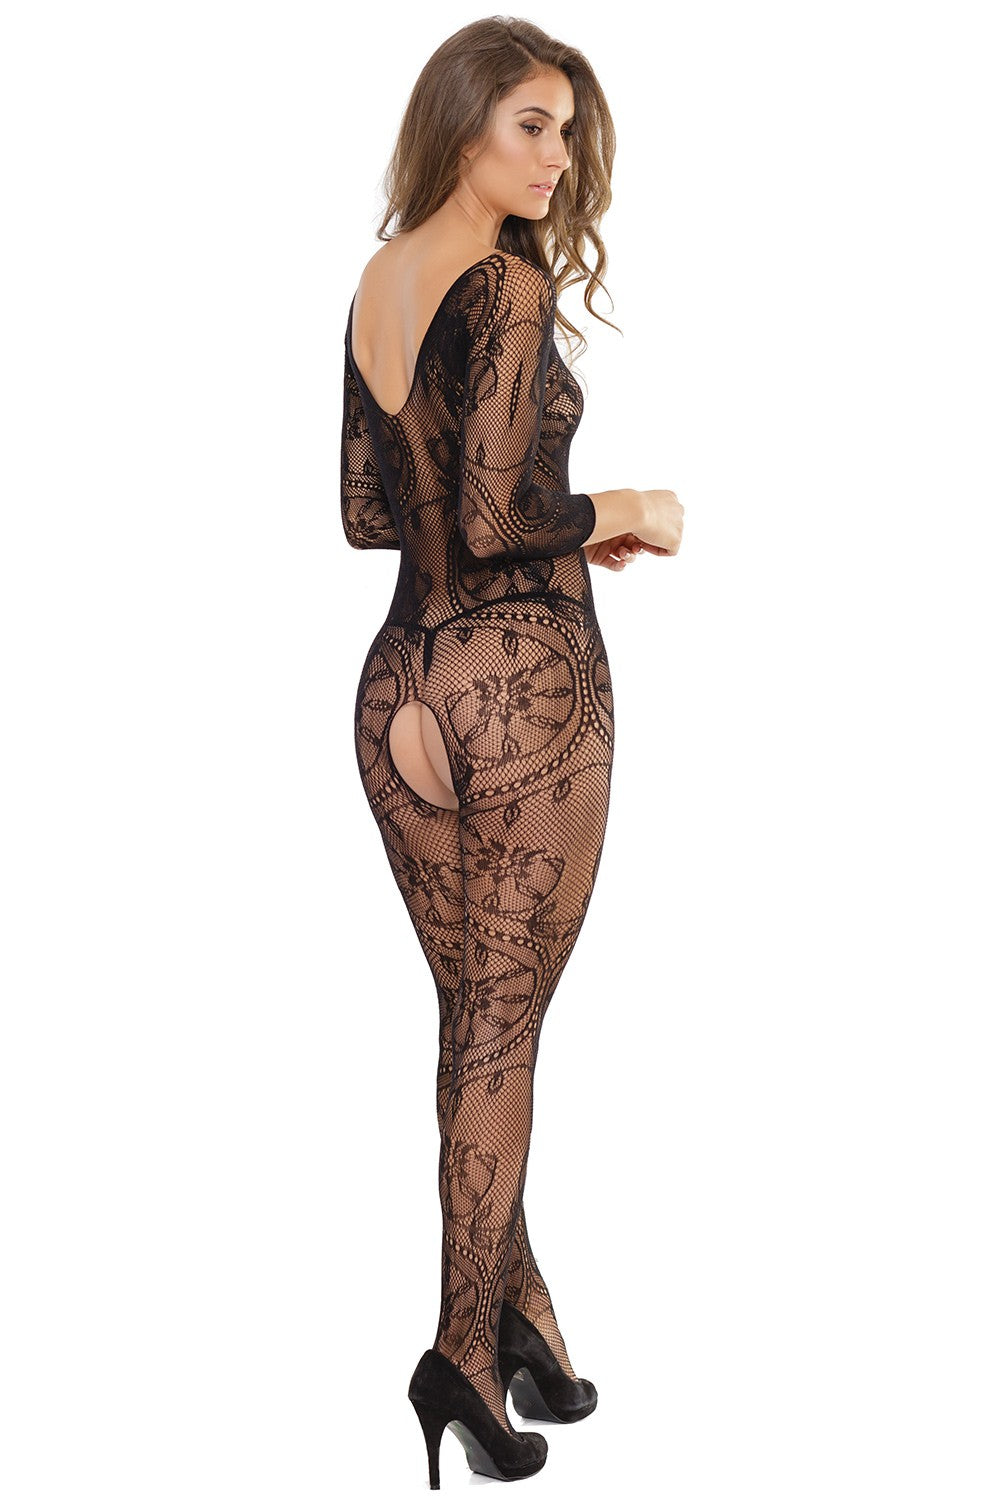 Crotchless Long Sleeve Lace Body Stocking (2559)